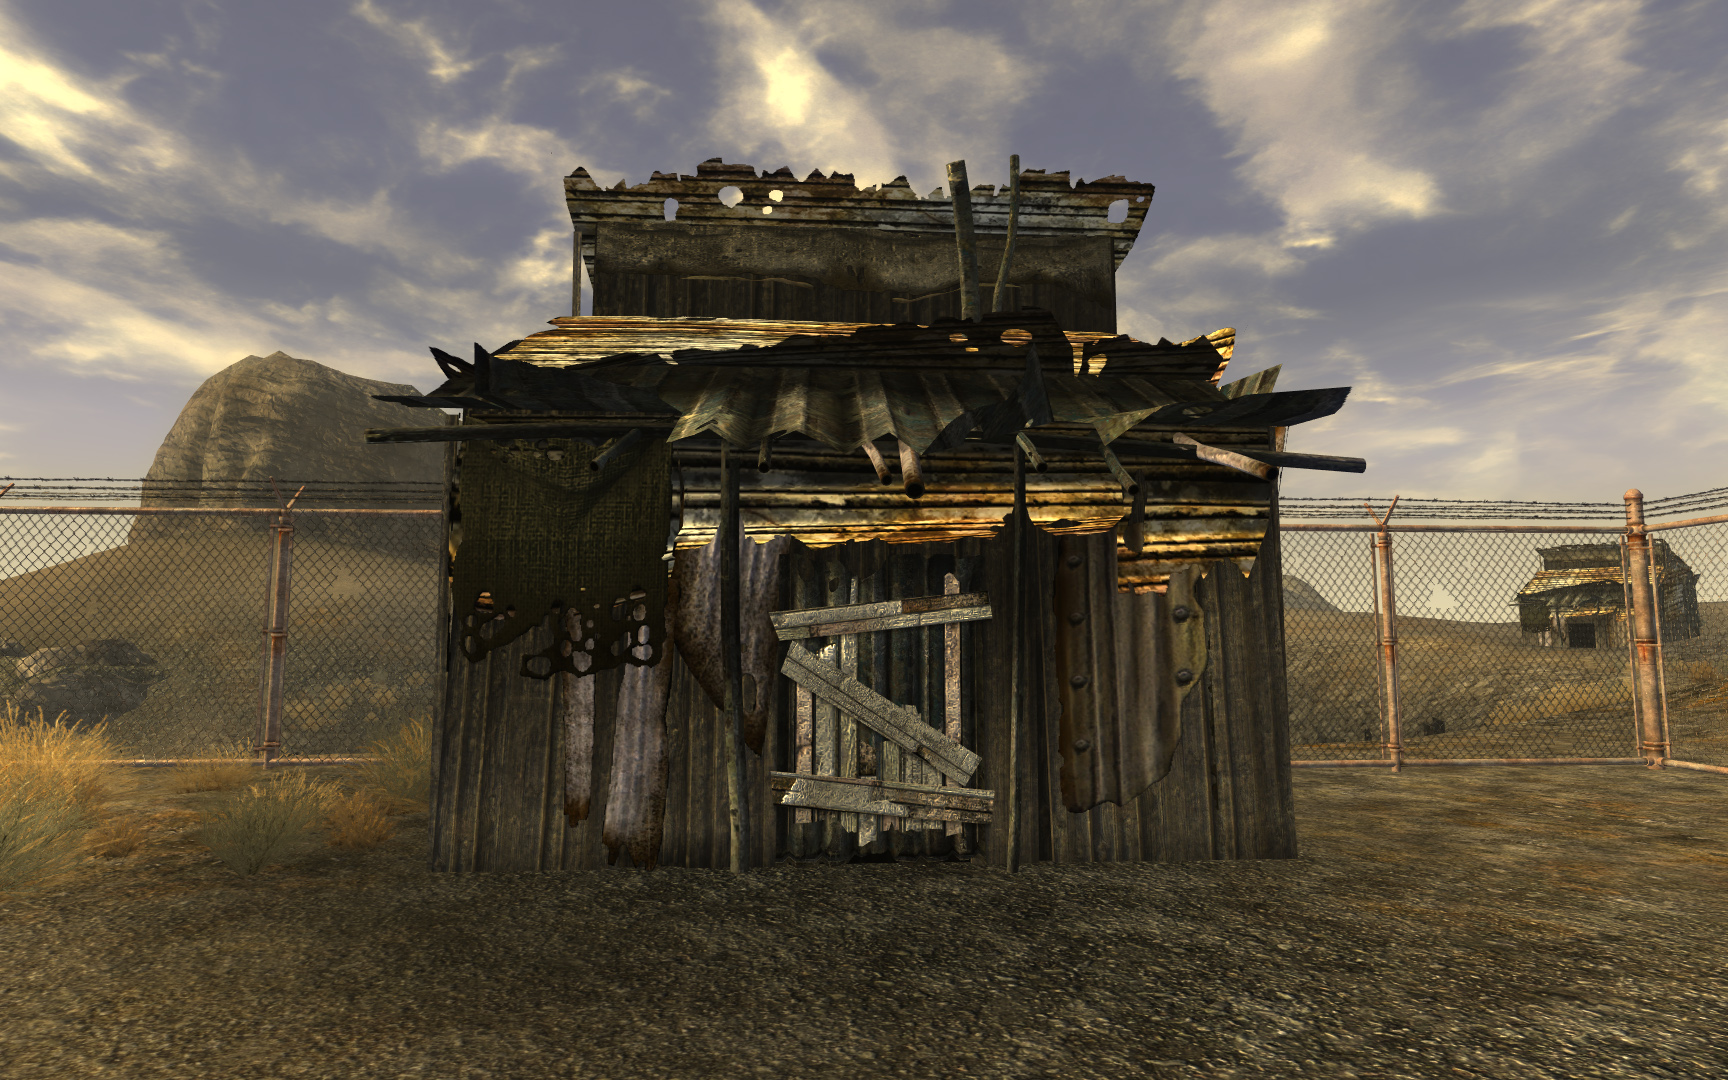 Nuclear test shack